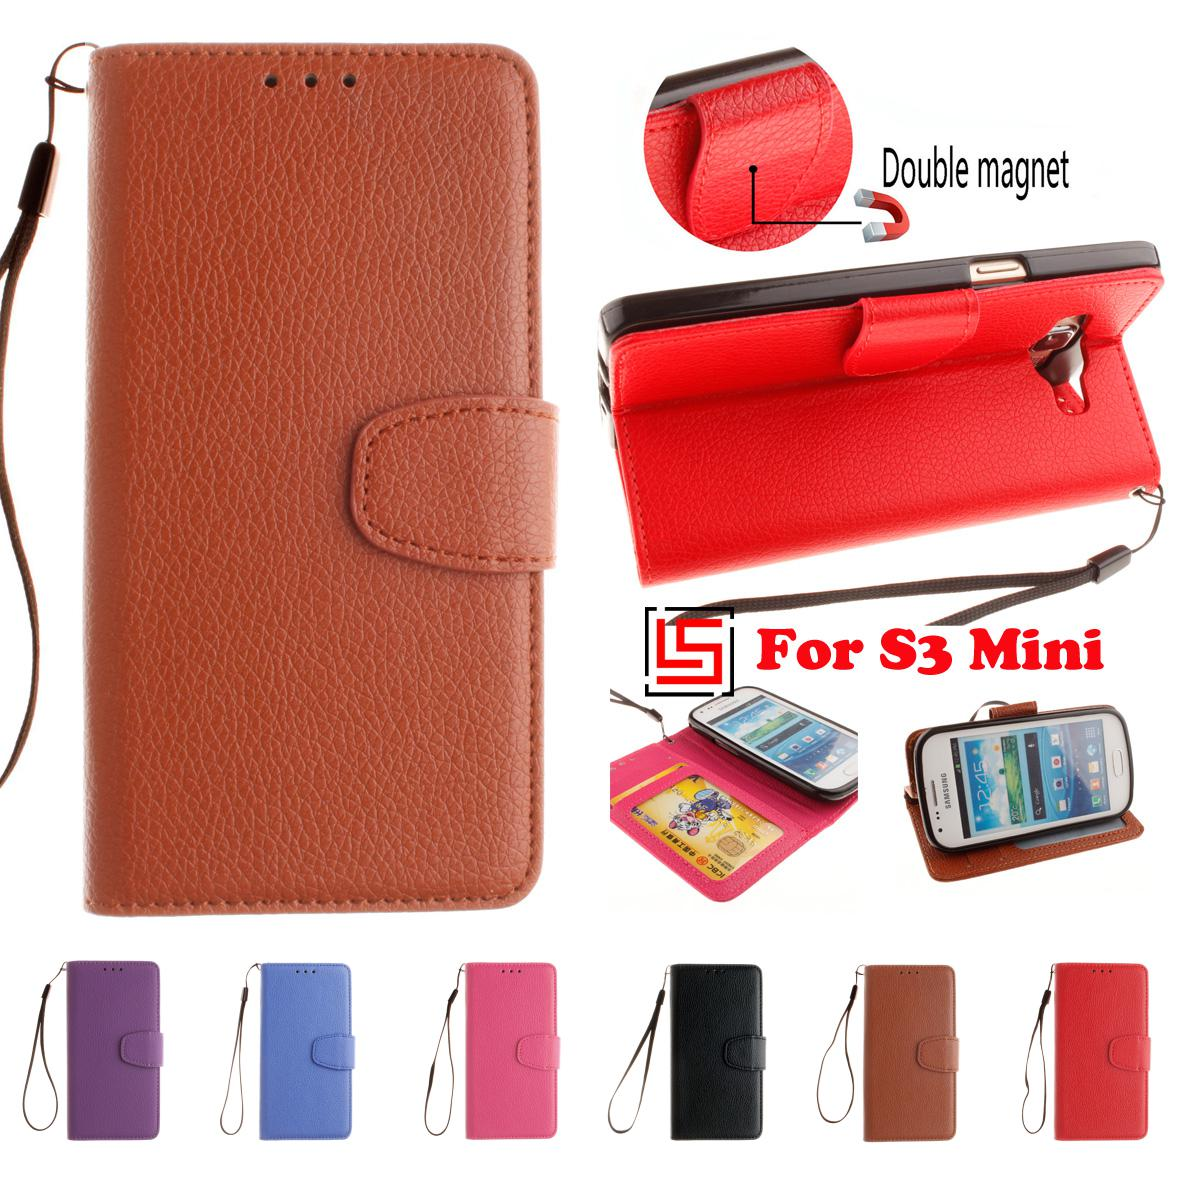 Retro New Fashion PU Leather Flip Wallet Phone Case coque Cover Bag For Samsung Galaxy G ...